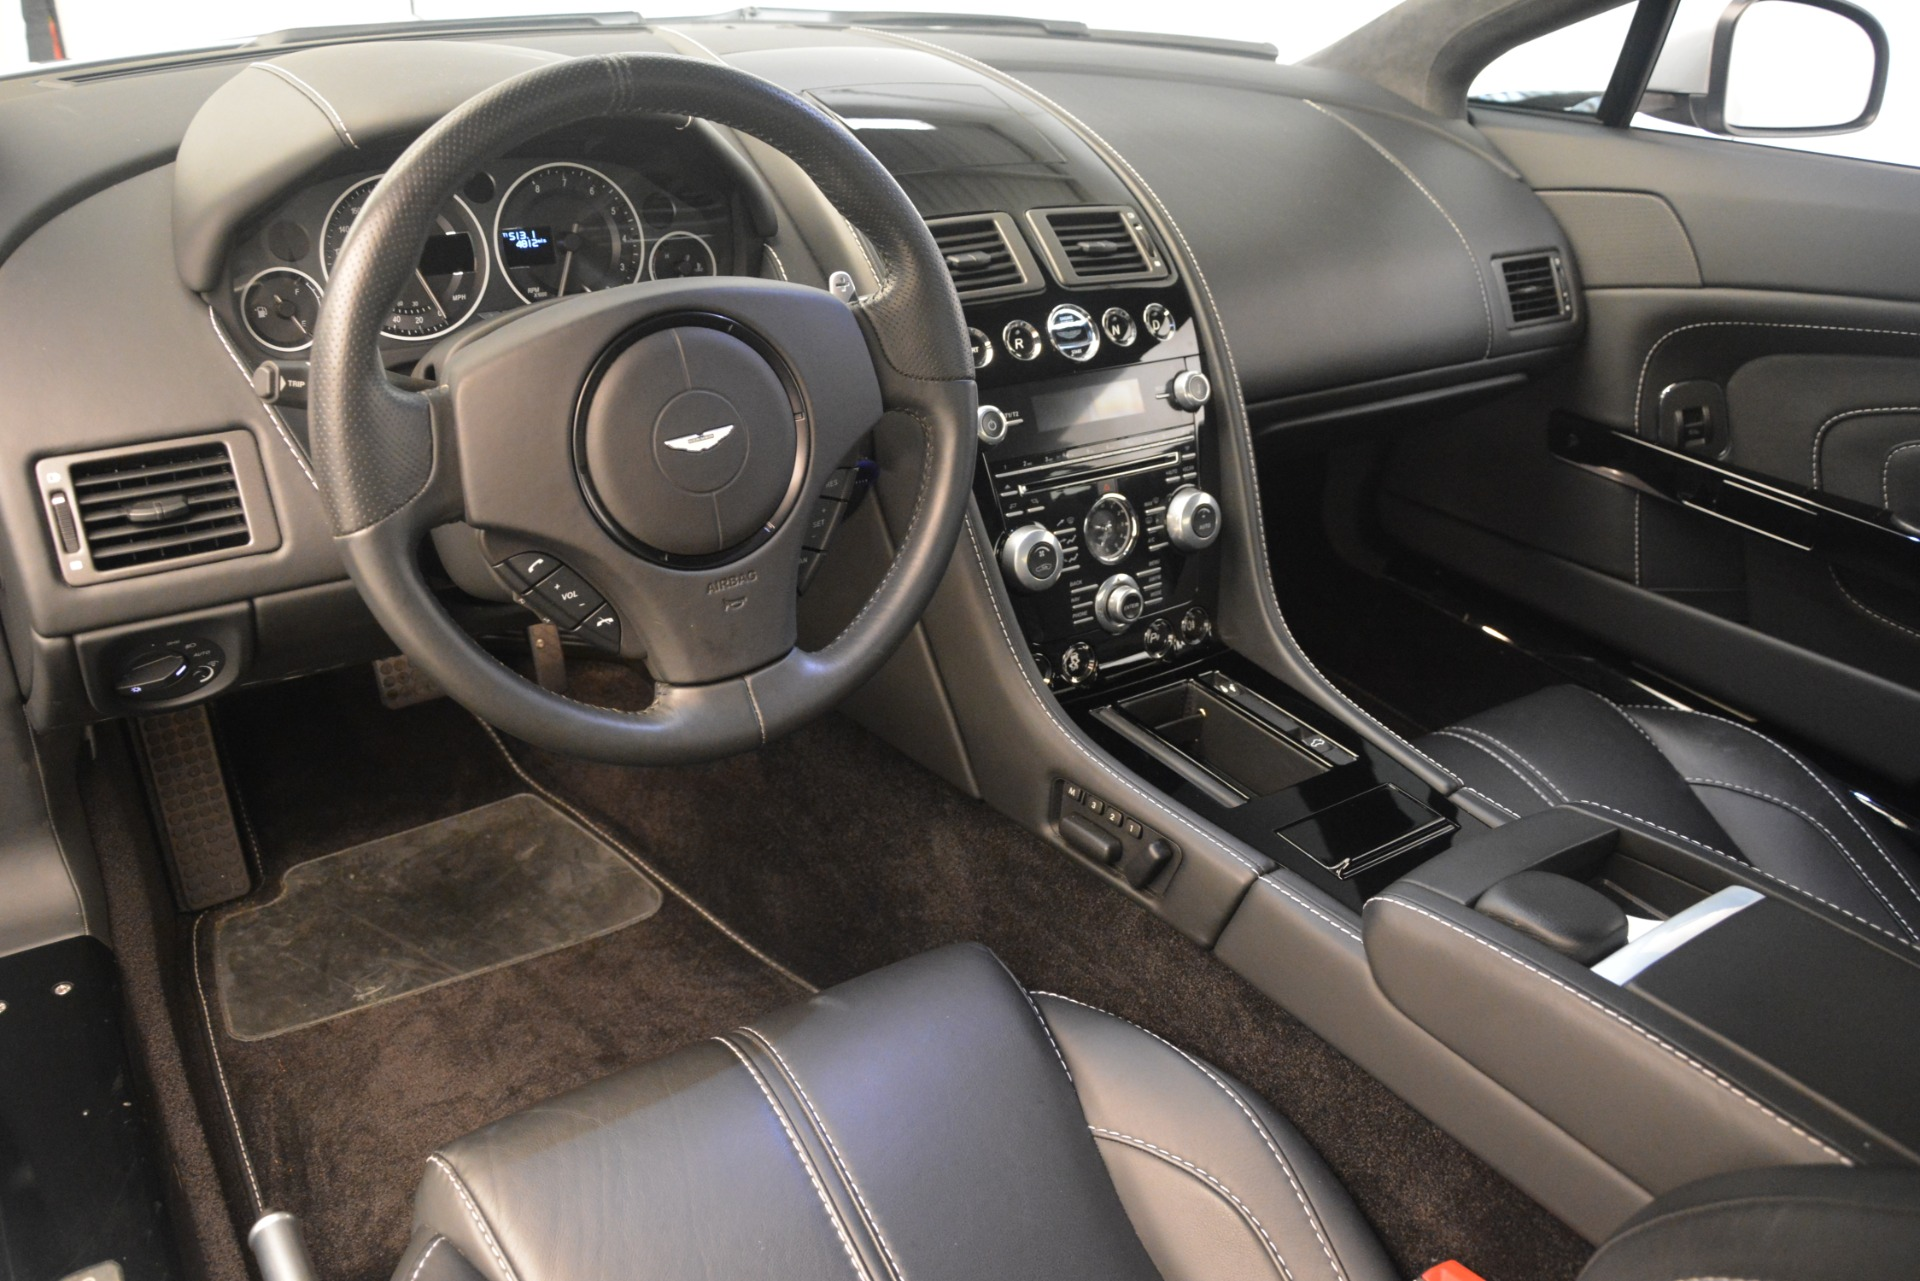 Used 2015 Aston Martin V12 Vantage S Coupe For Sale 109900 In Greenwich, CT